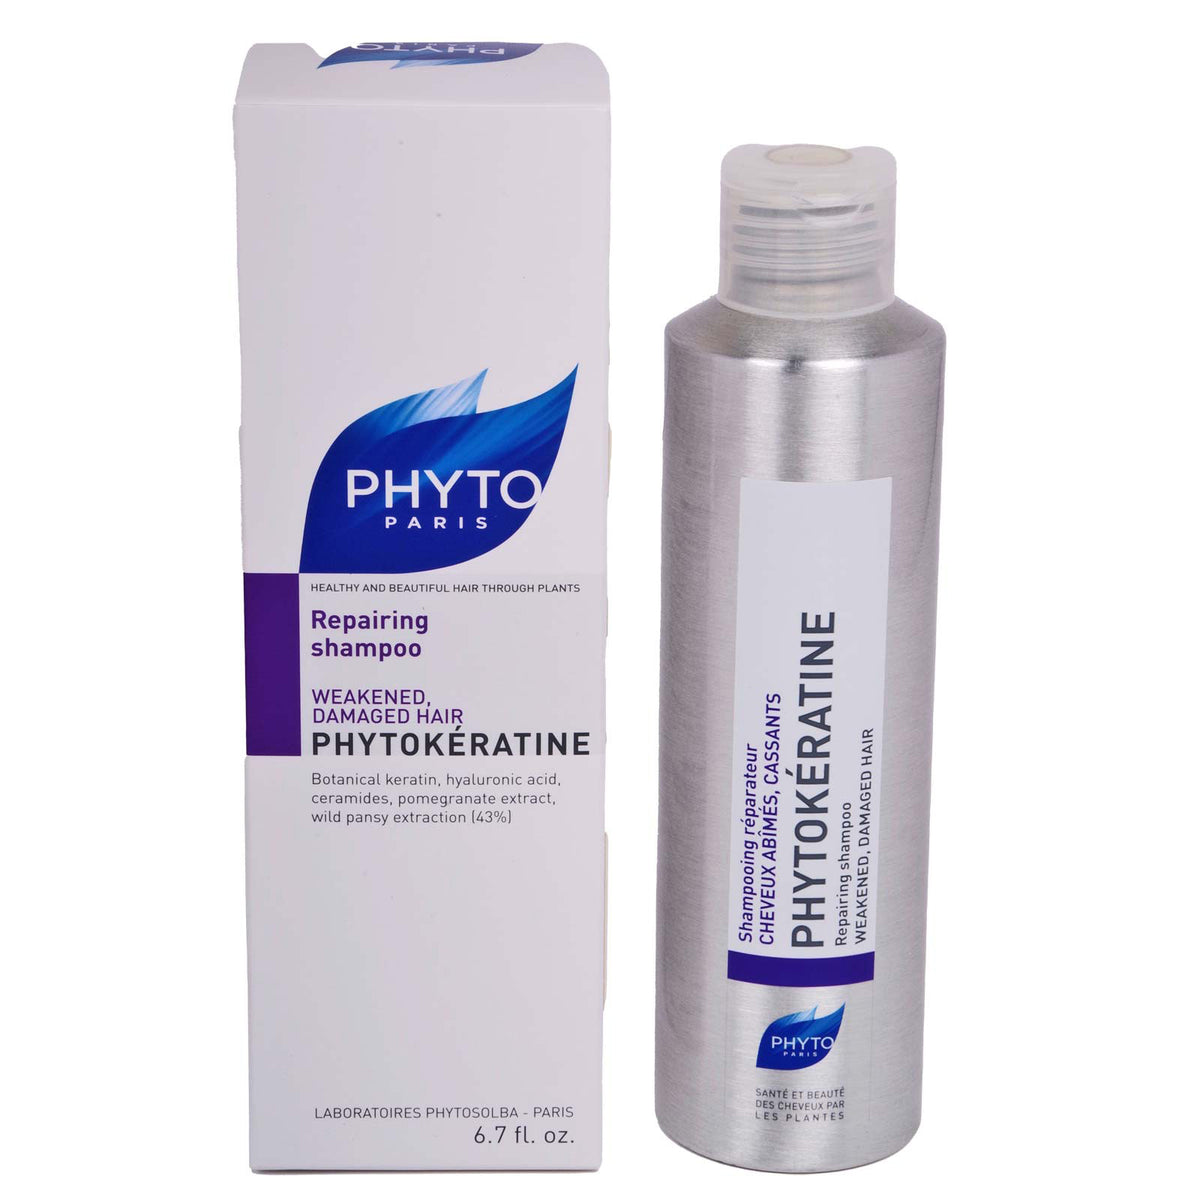 Phyto Shampoo 200ml Phytokeratine - A sensorial shampoo that gently cleanses and repairs deep down, providing nutrition for silky hair with ultimate shine. (12/cs)